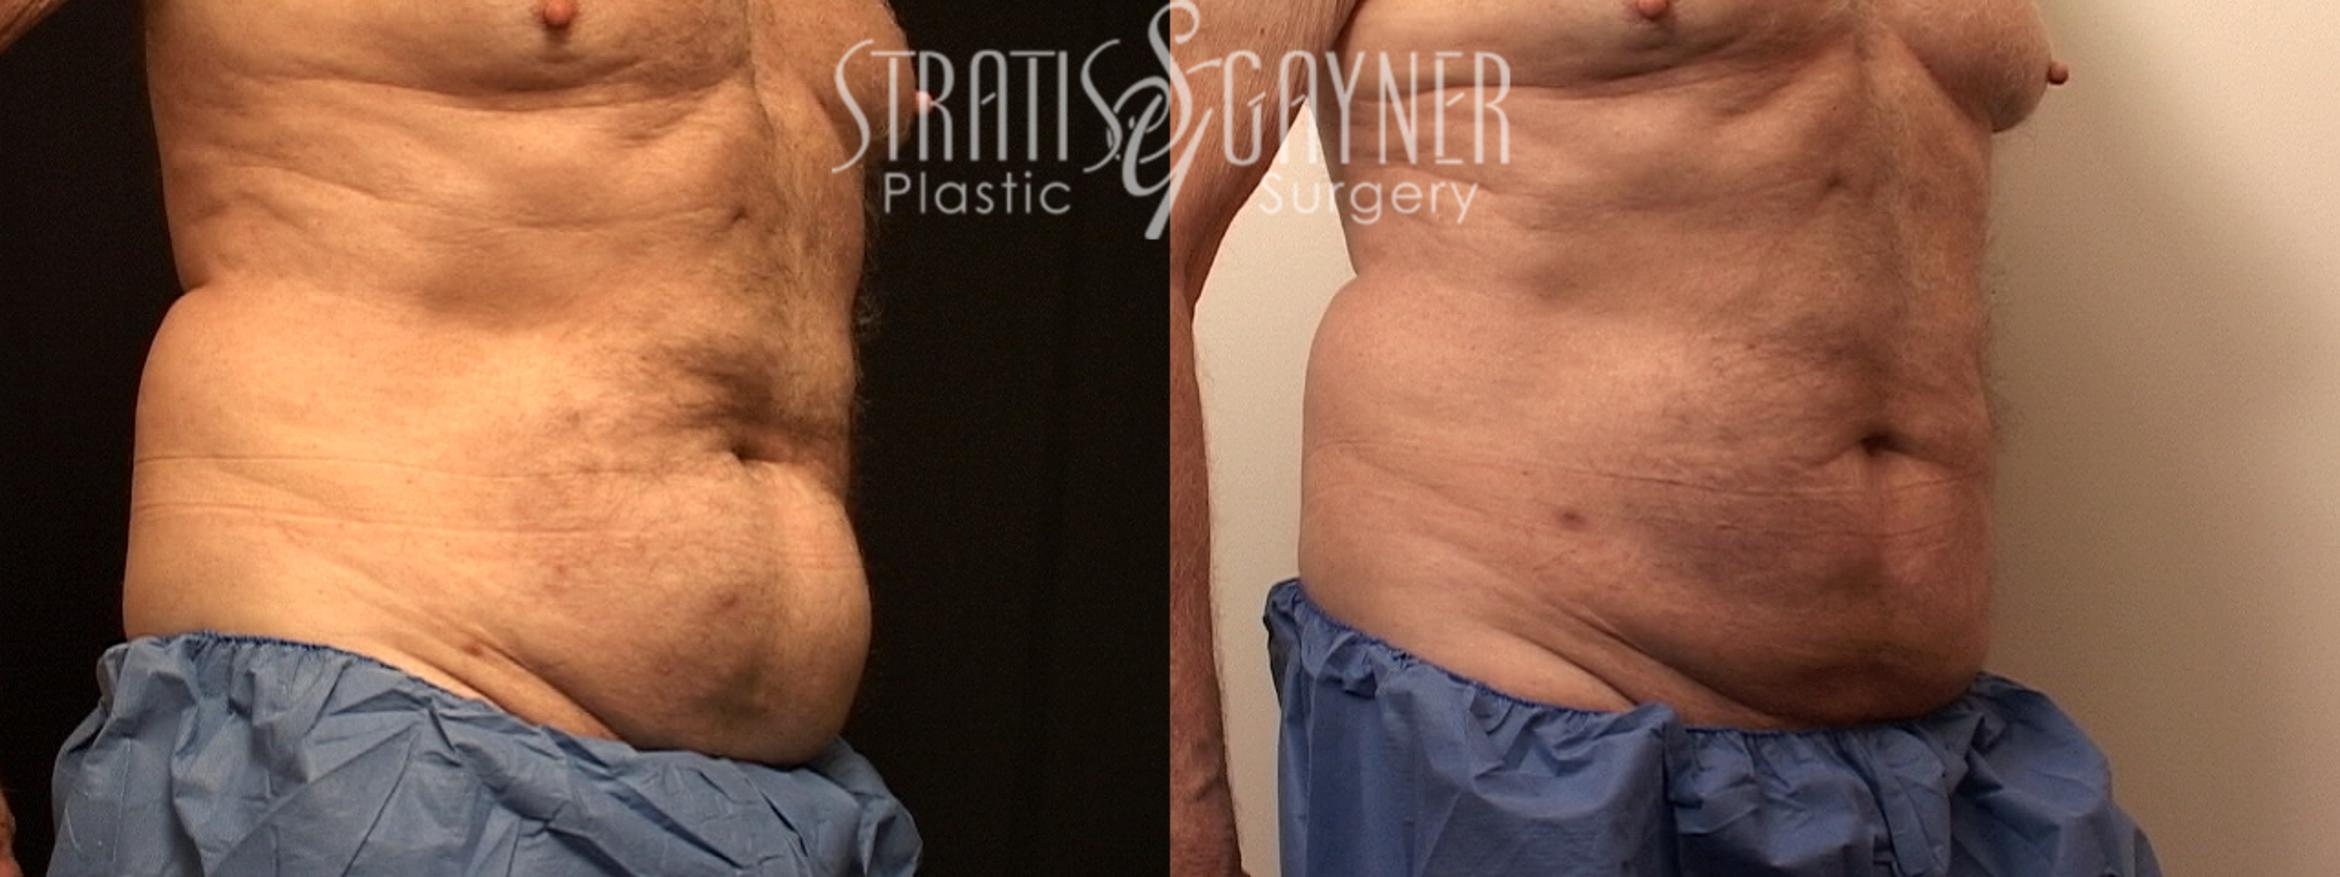 Liposuction Case 127 Before & After View #5 | Harrisburg, PA | Stratis Gayner Plastic Surgery